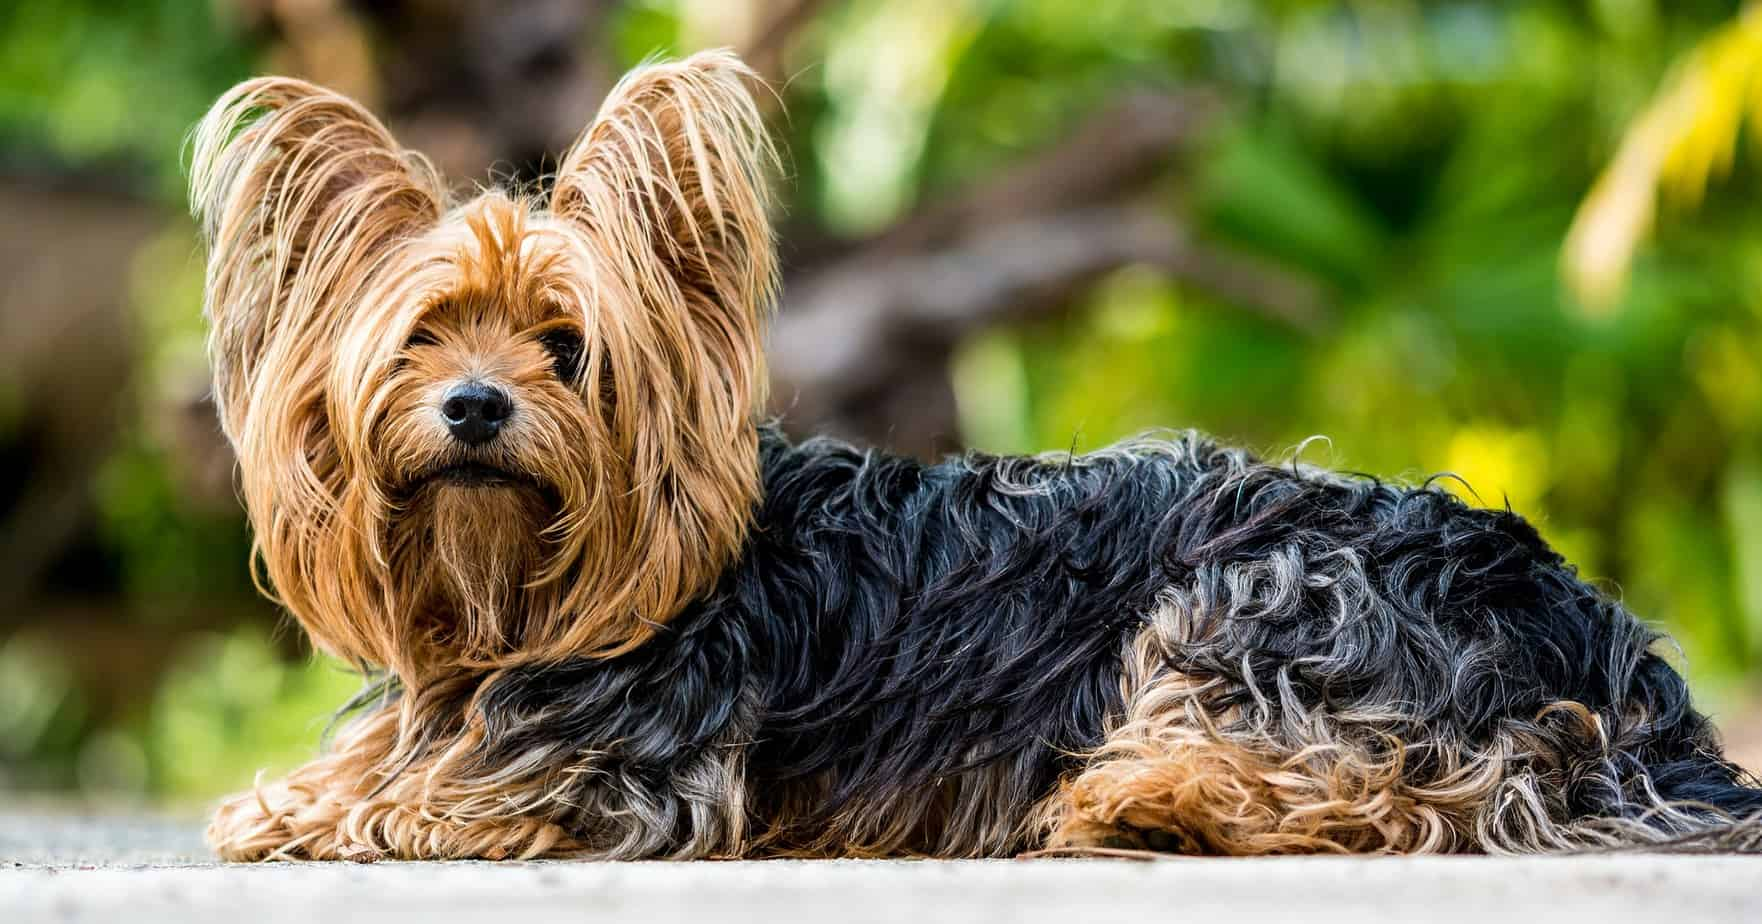 Yorkshire Terrier small fluffy dog